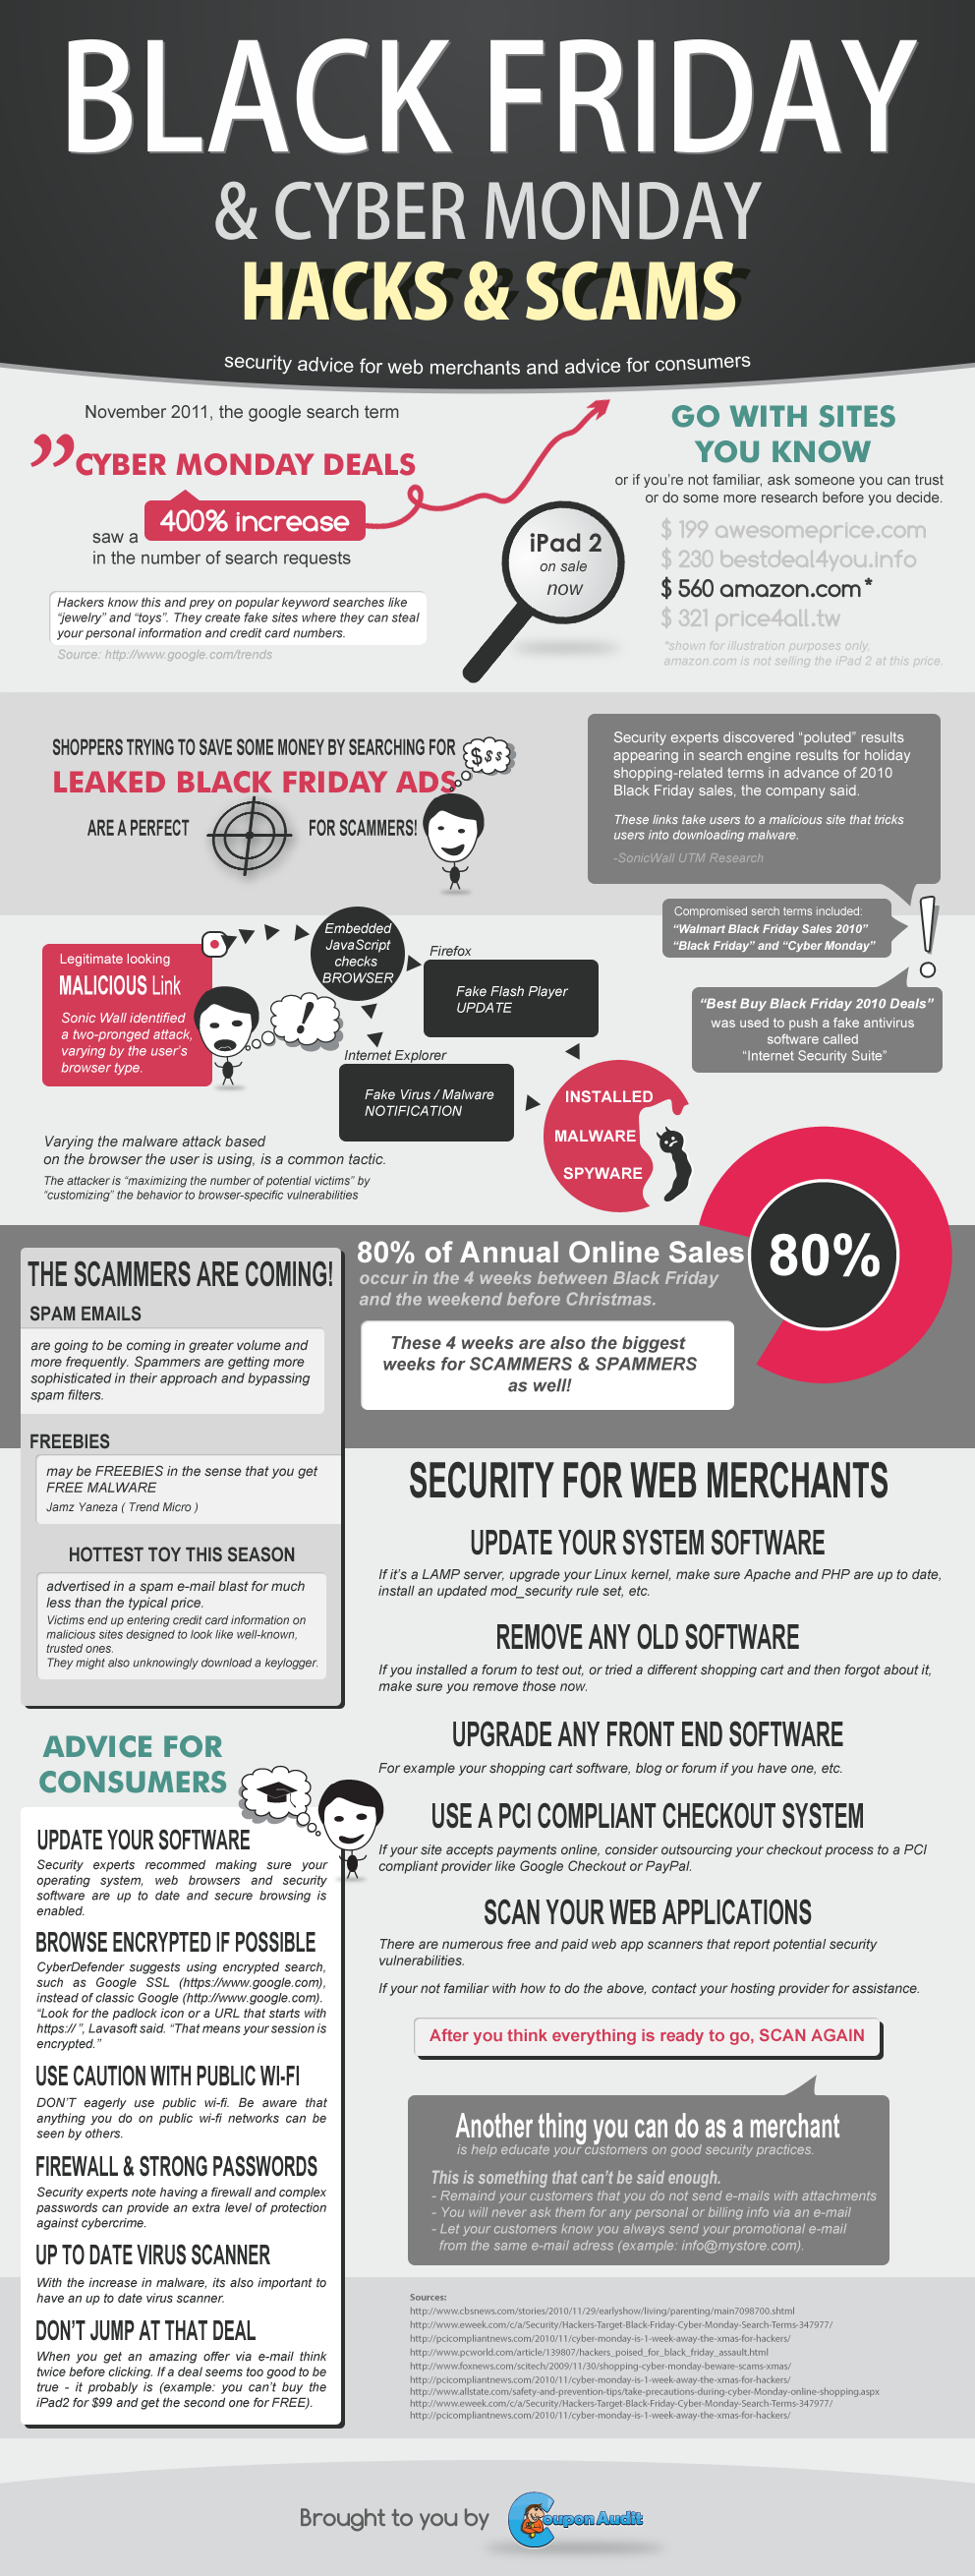 Cyber Monday & Black Friday's Hacks & Scams